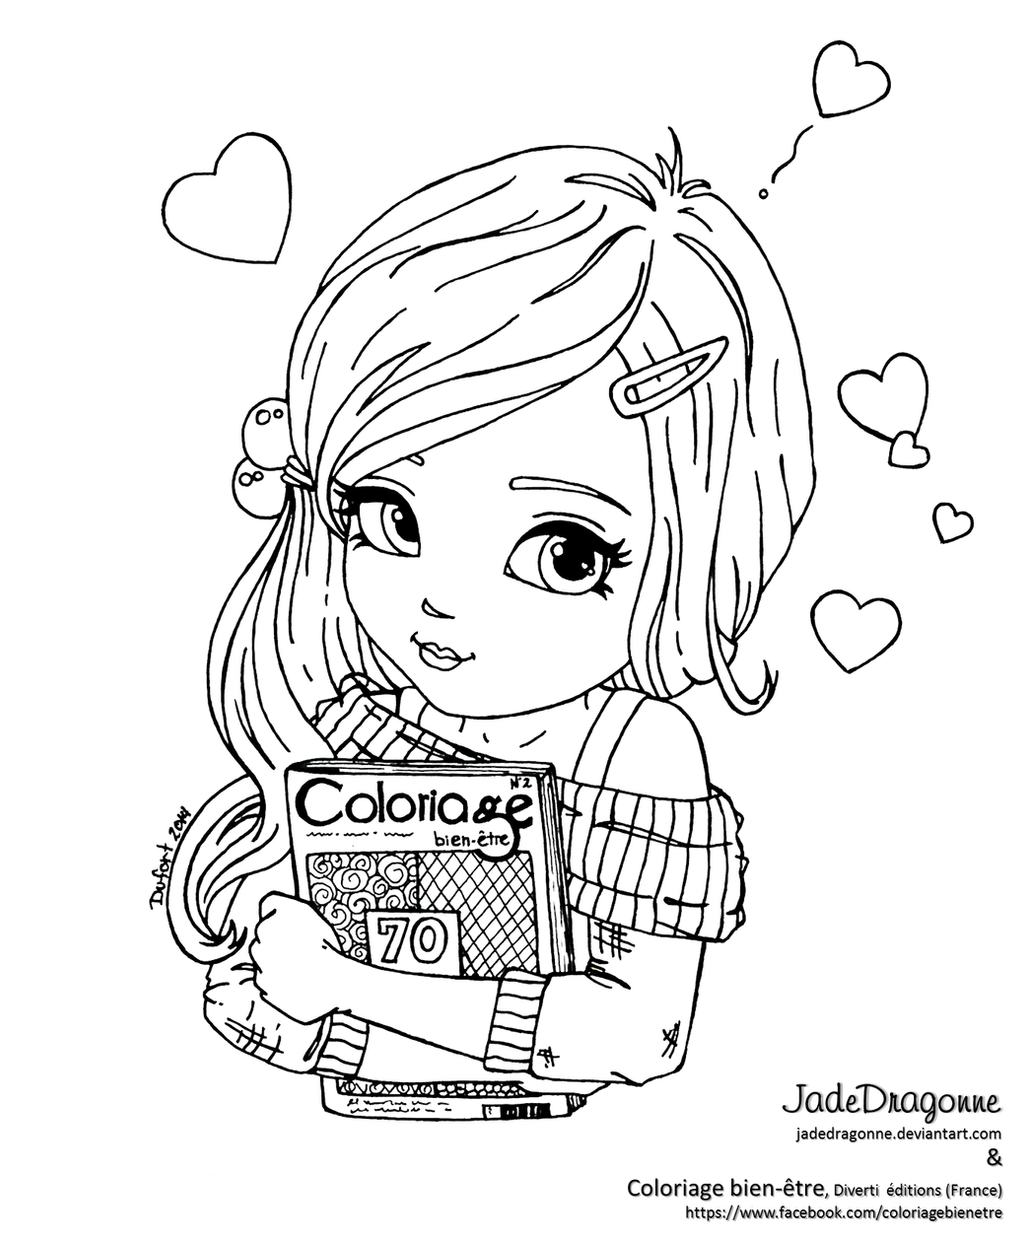 Line Art Coloring Pages : Exciting moment lineart by jadedragonne on deviantart